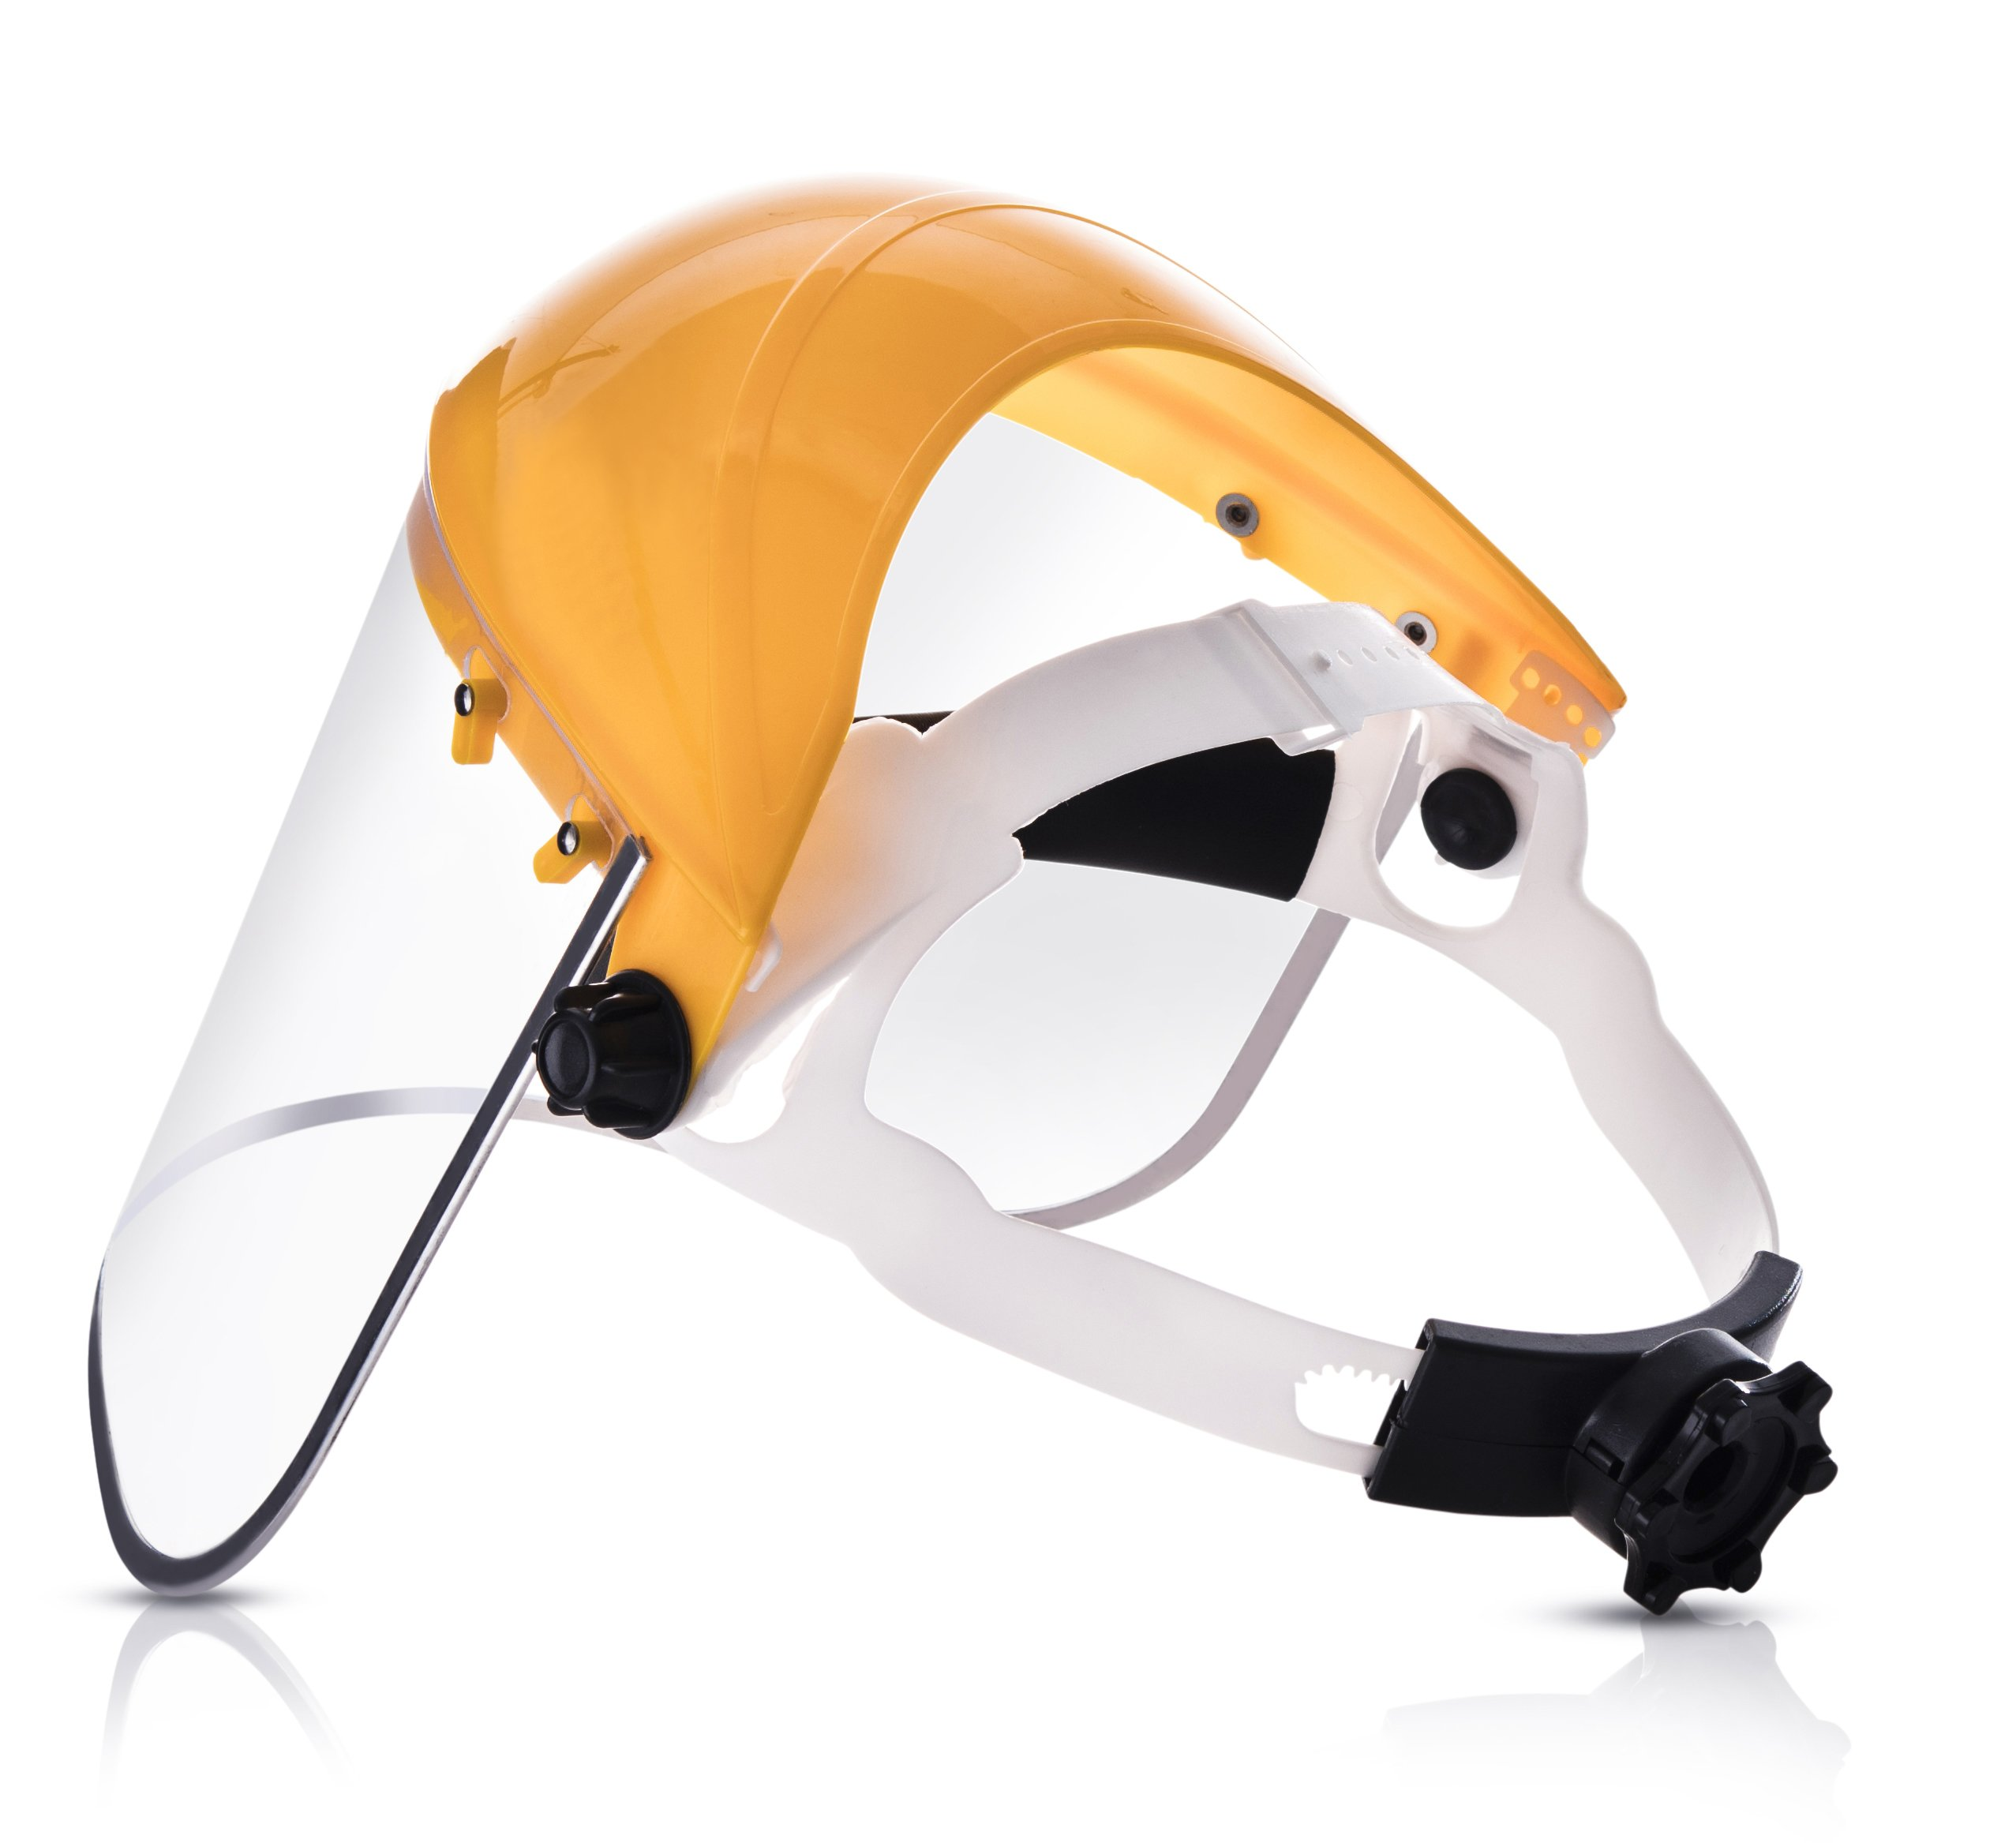 Katzco Clear Full Face Shield Visor Mask - Face And Head Coverage- Ideal For Automotive, Construction, General Manufacturing, Mining, Oil/Gas Uses